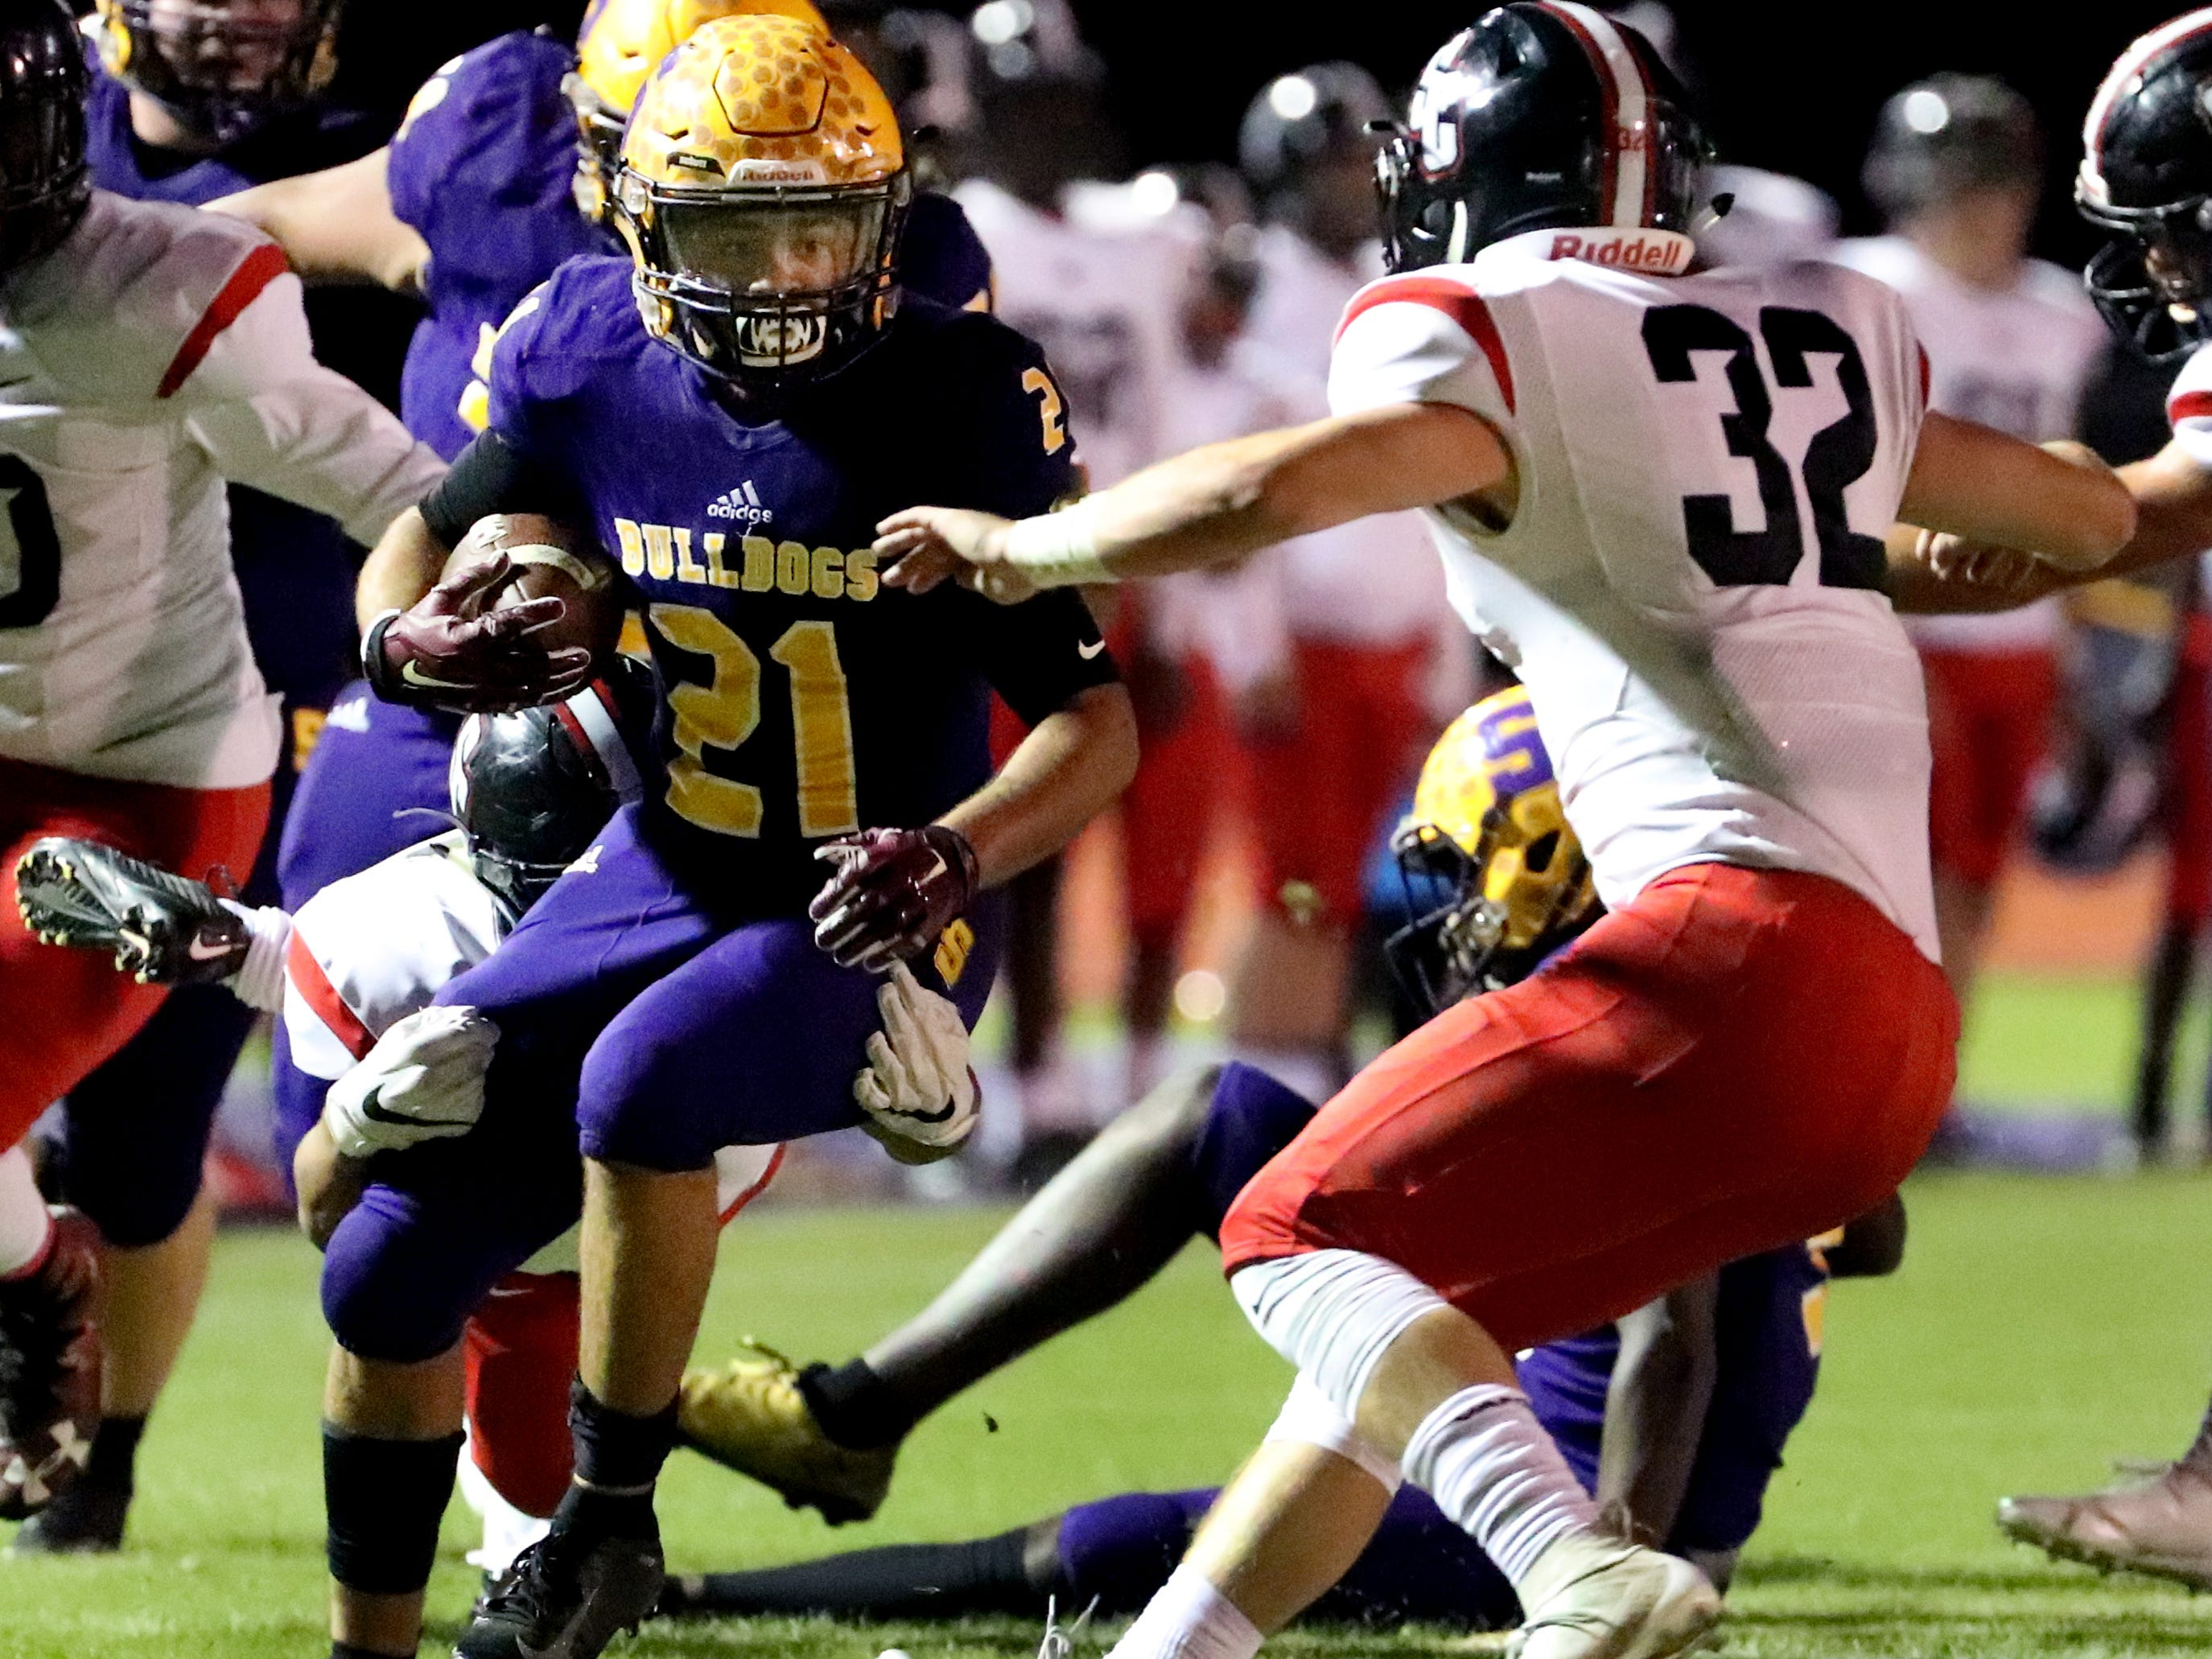 Smyrna's Blake Watkins (21) runs the football as Stewarts Creek's Sam Slaughter (32) moves in for a tackle at Smyrna High School on Friday, Oct. 12, 2018.